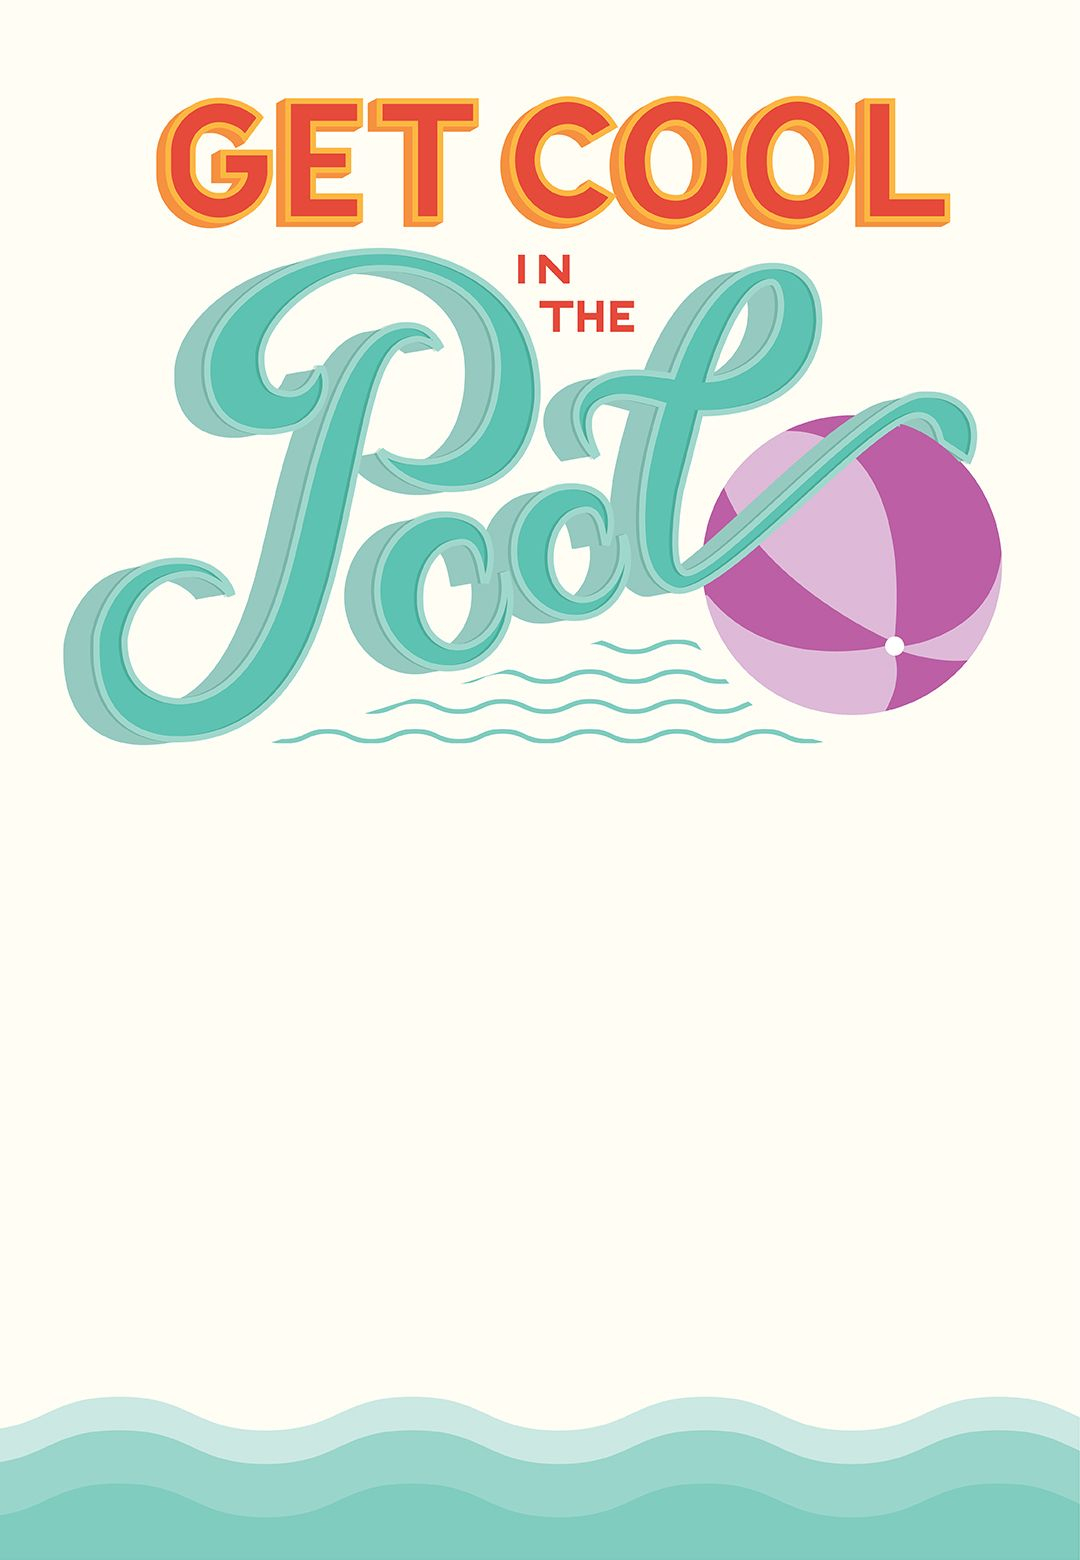 Pool Party - Free Printable Party Invitation Template | Greetings - Free Printable Pool Party Invitations